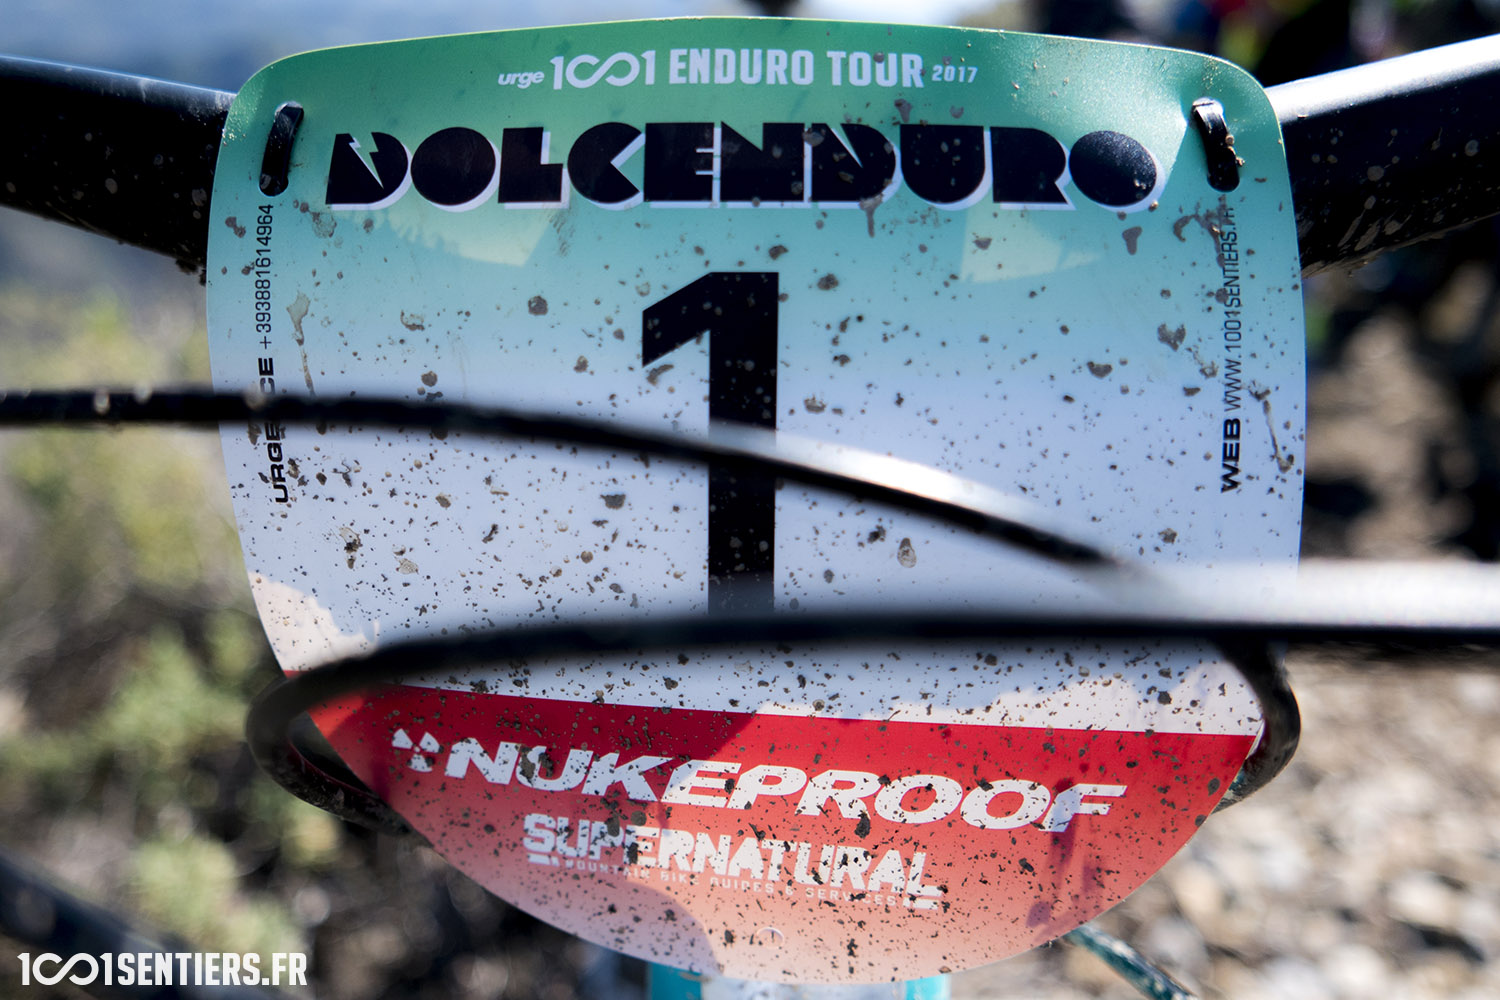 urge 1001 enduro tour dolcenduro 1001sentiers plaque